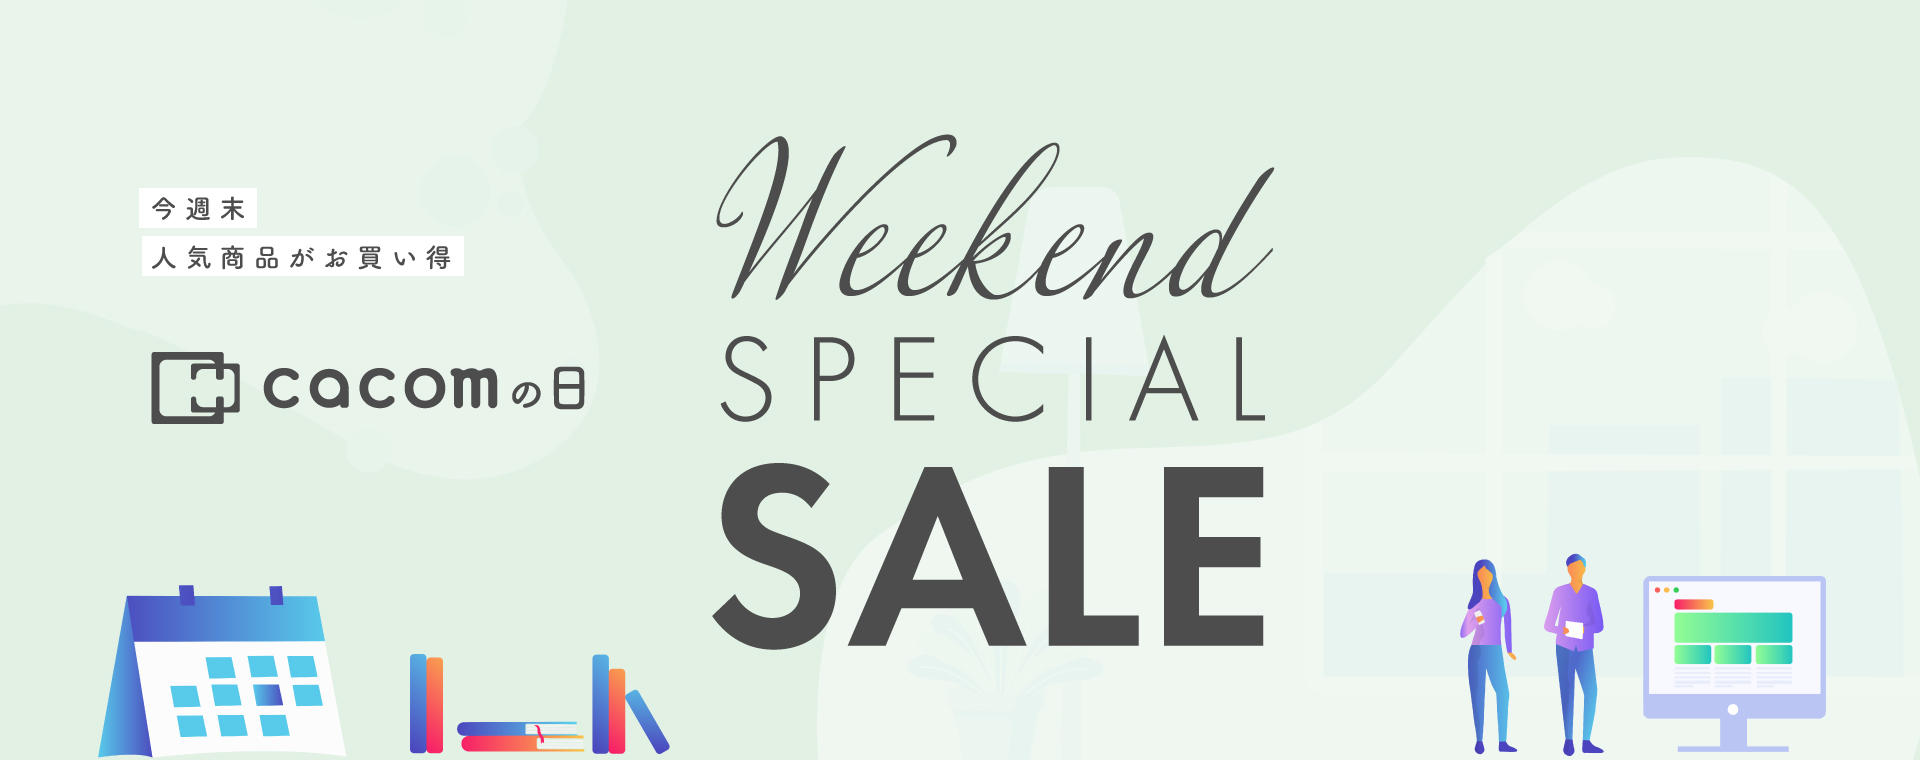 cacomの日 - Weekend SPECIAL SALE